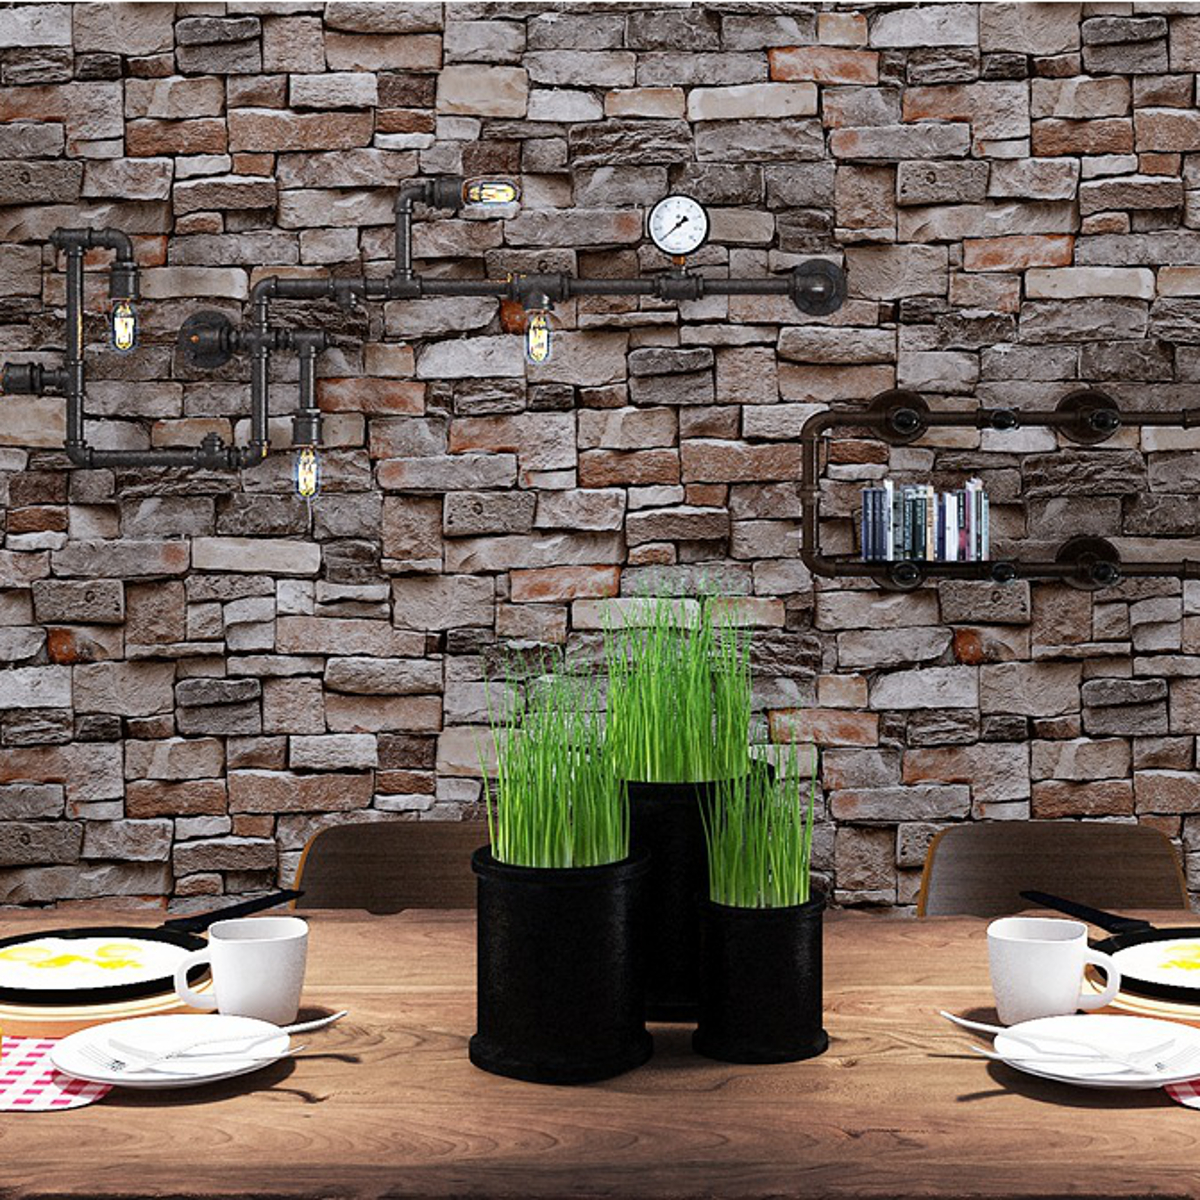 3D Brick Stone Embossed Textured Home Wallpaper Wall Paper